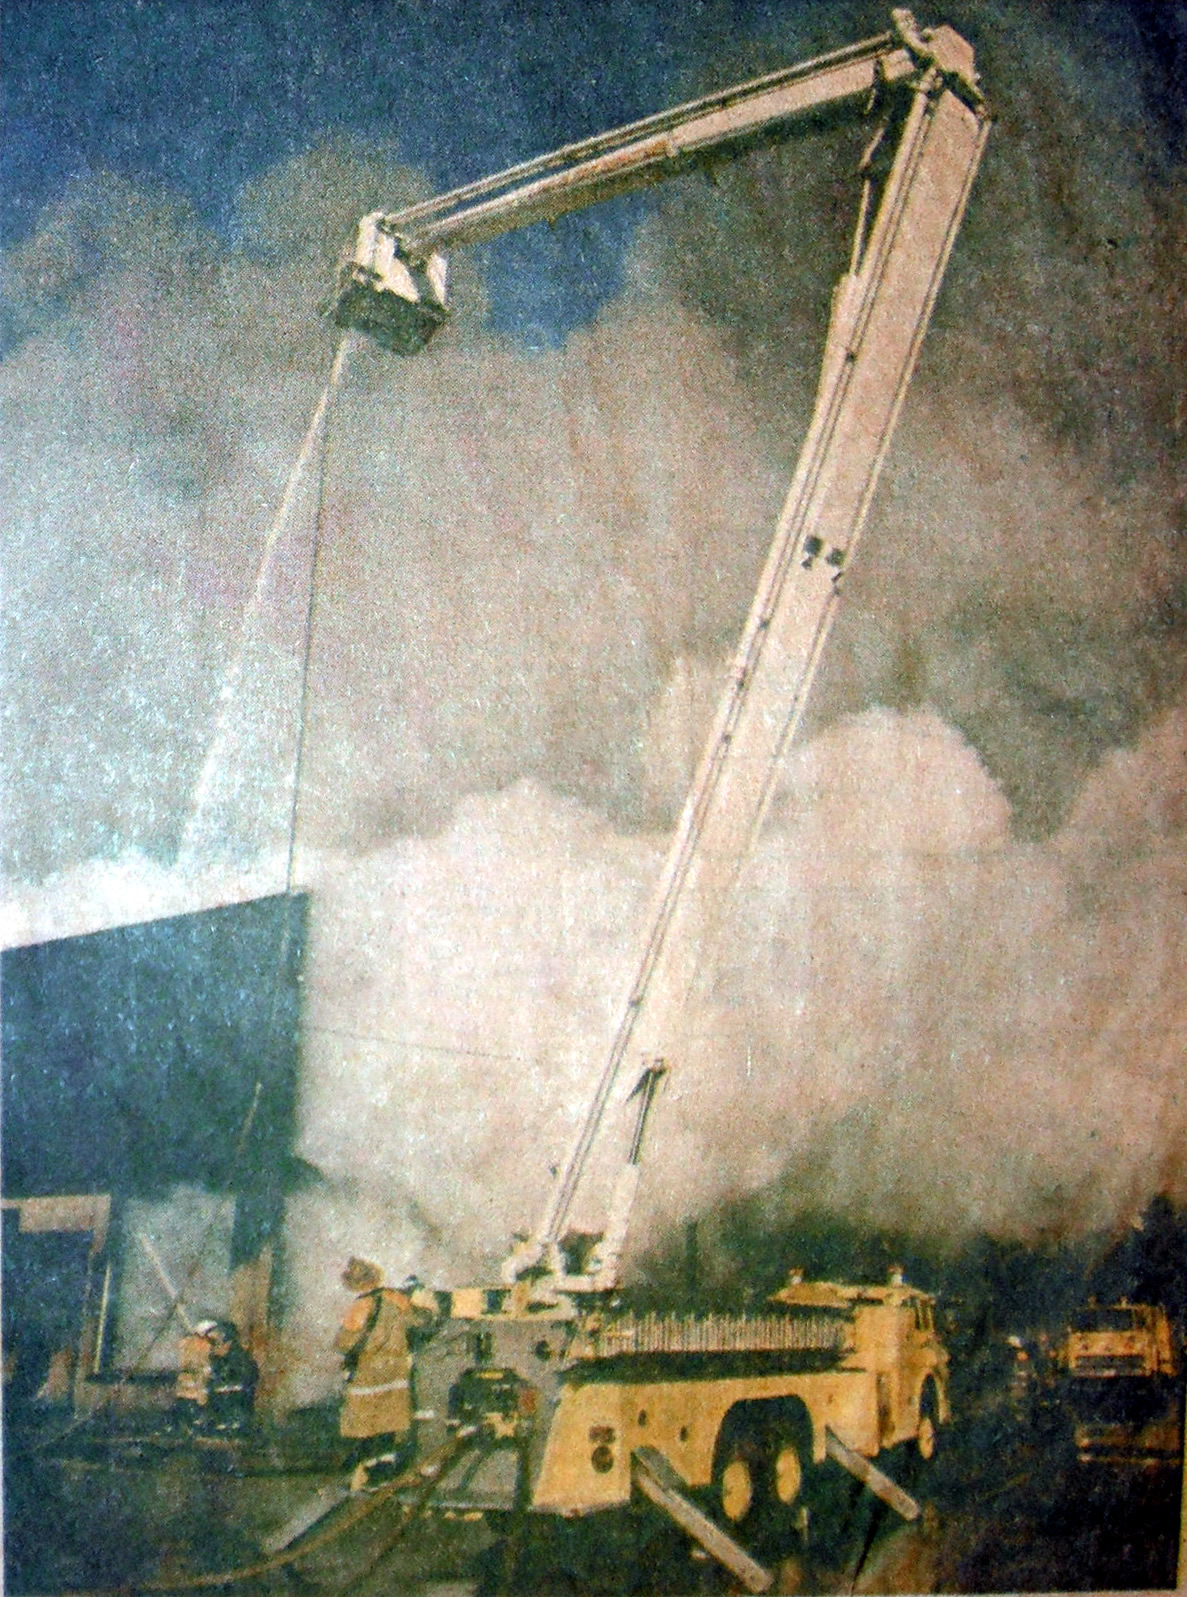 Fire fighters with snorkel truck putting out hot spots.